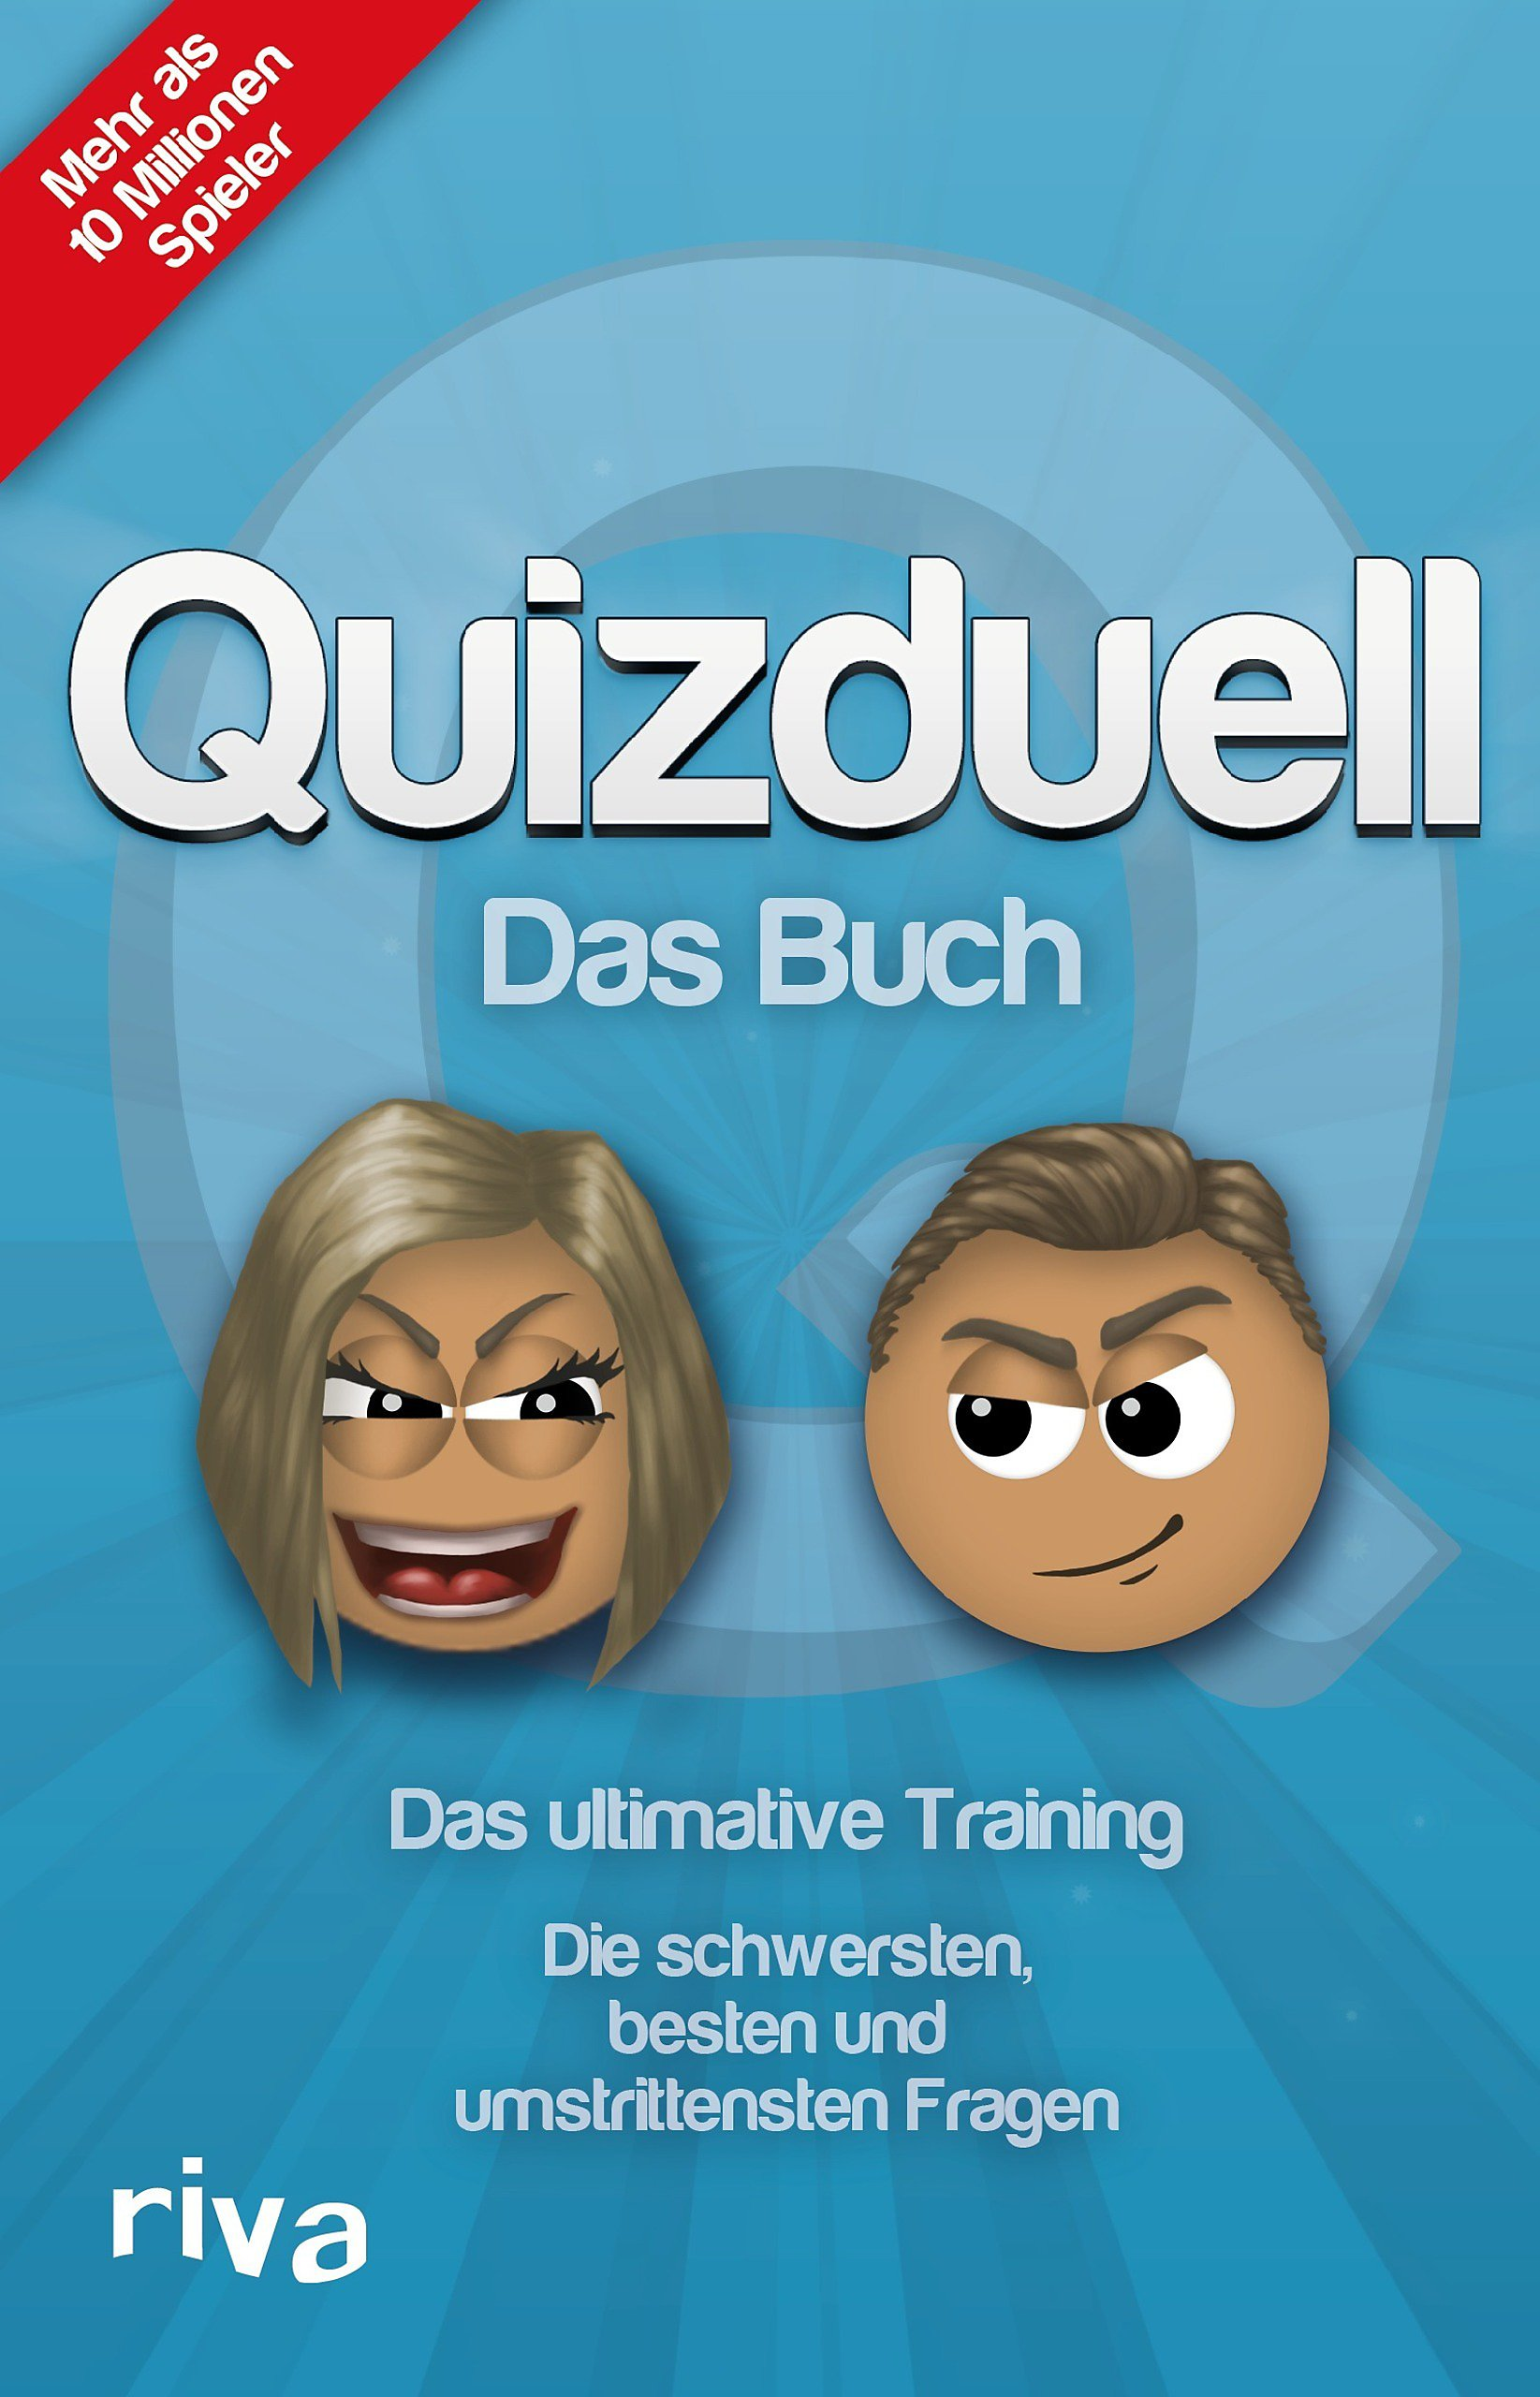 Quizduell Training